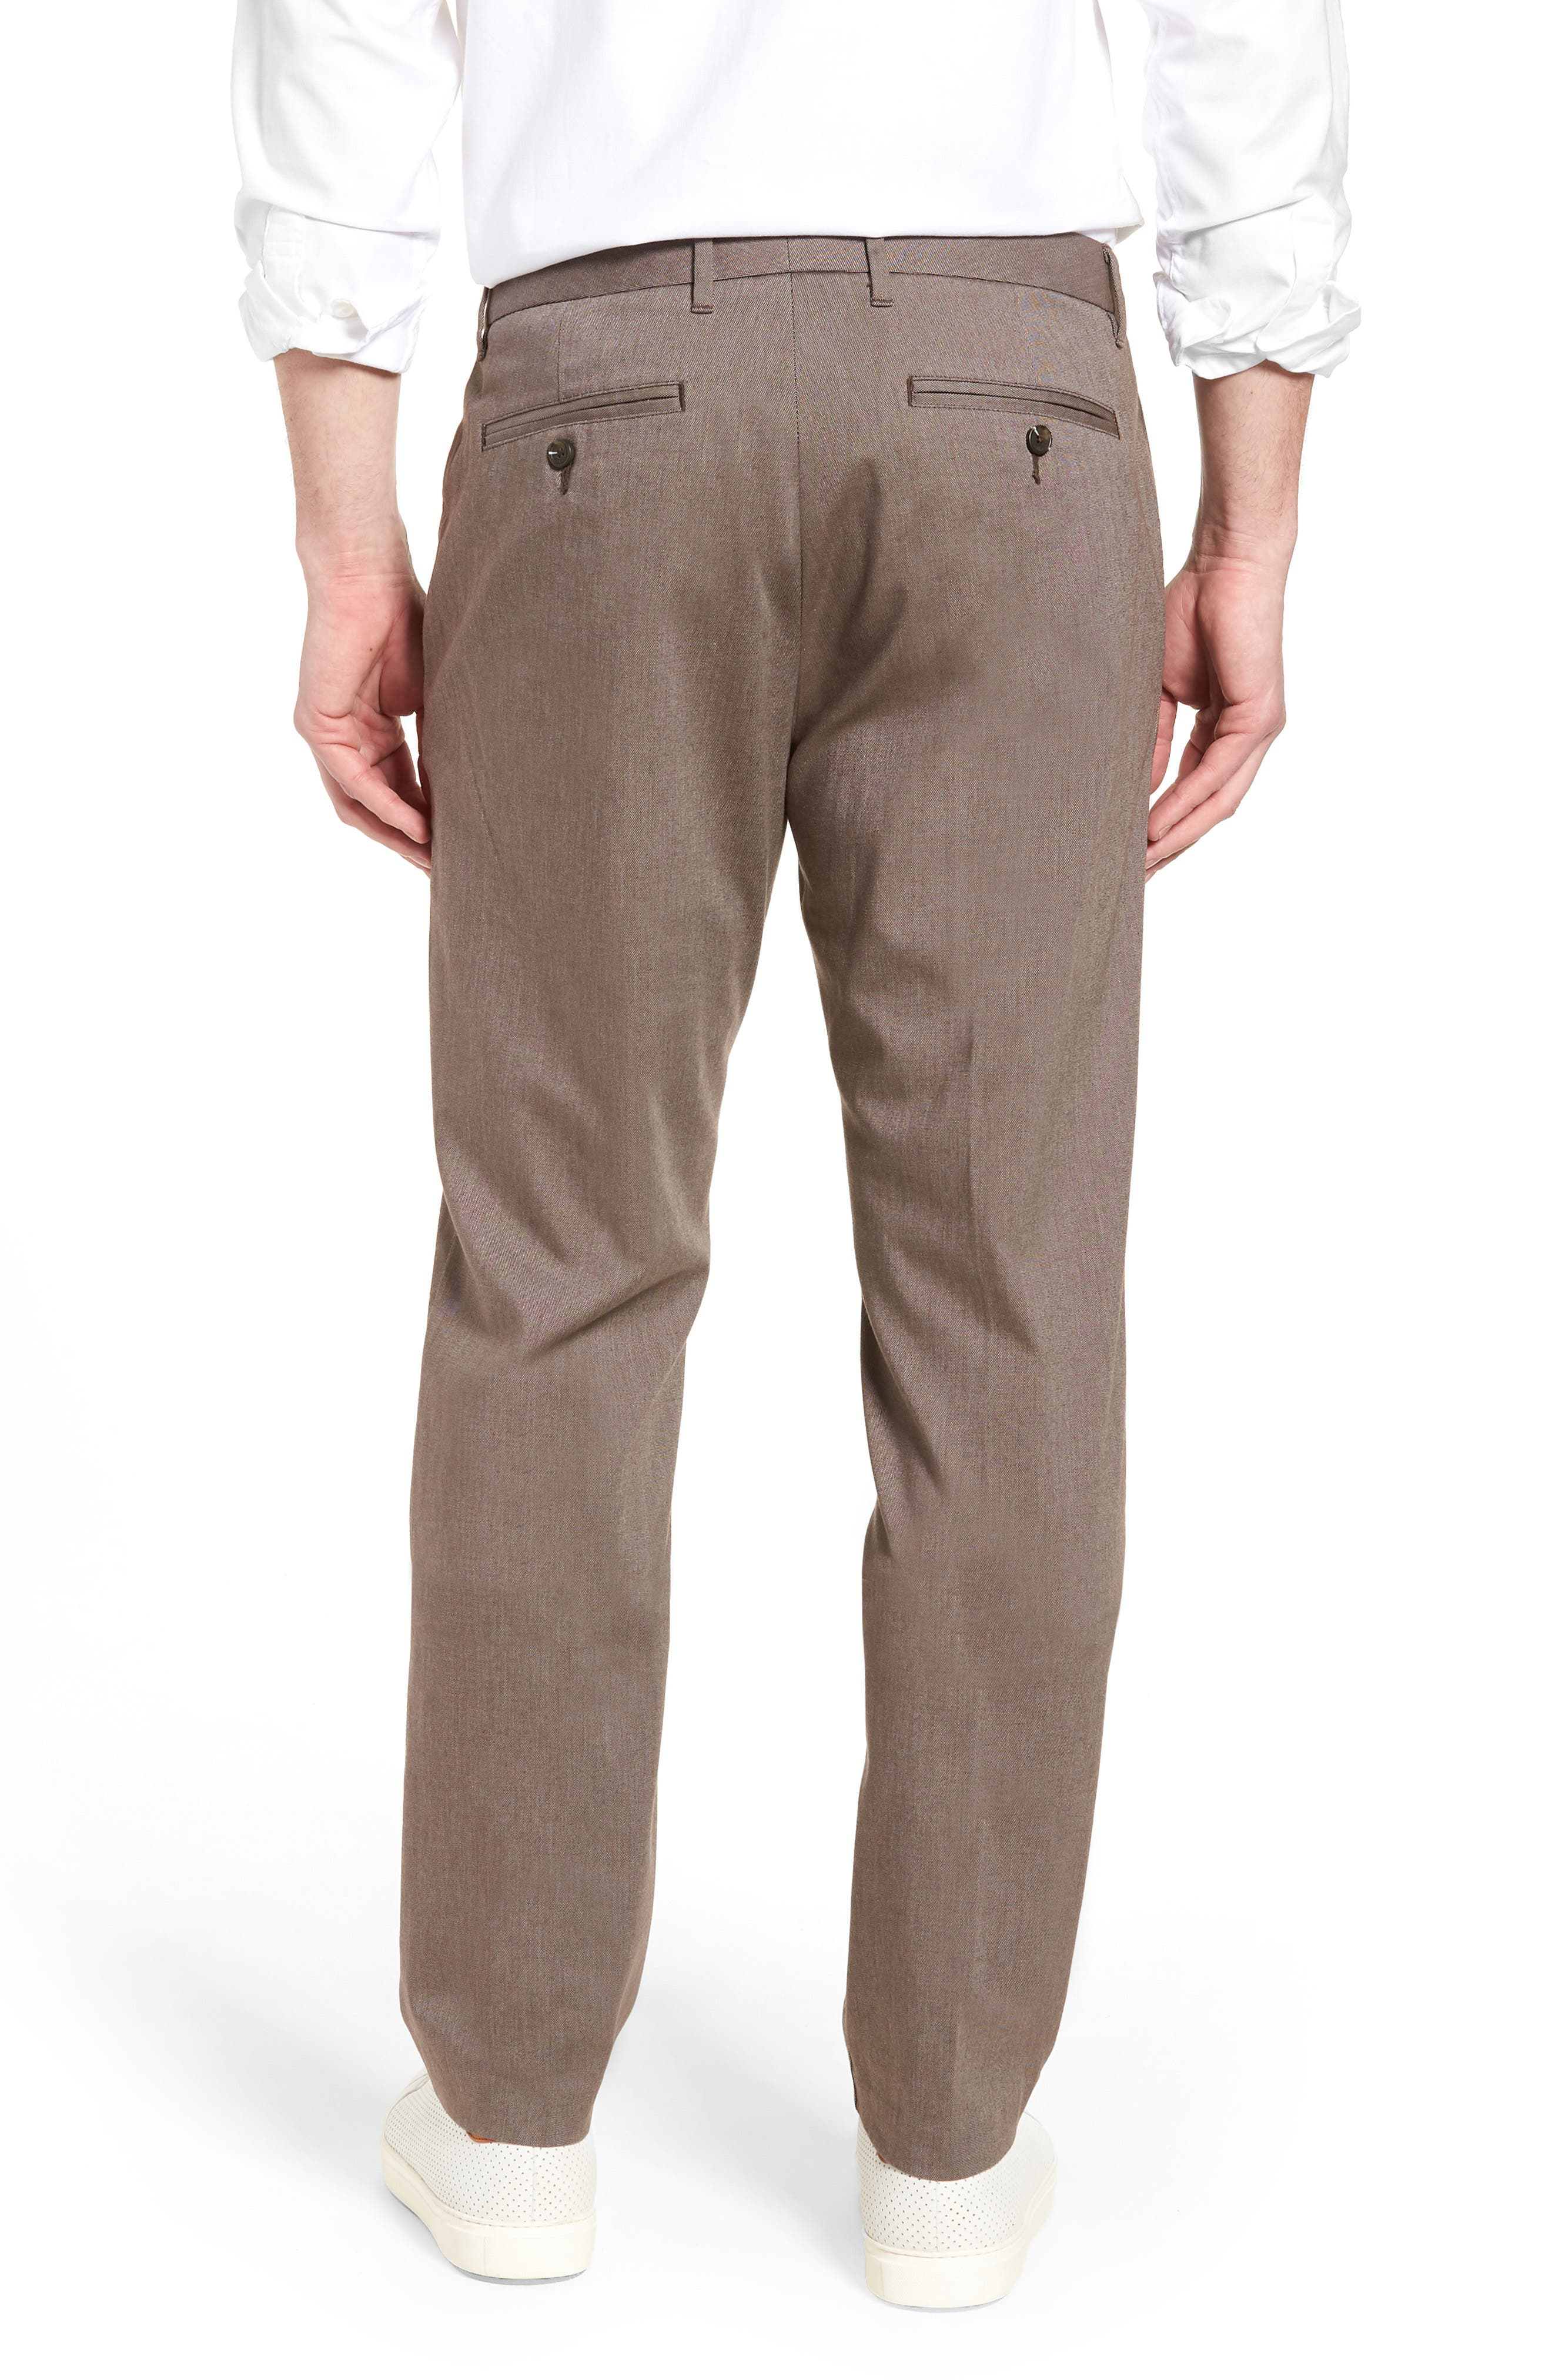 Weekday Warrior Flat Front Stretch Cotton Pants,                             Alternate thumbnail 2, color,                             200